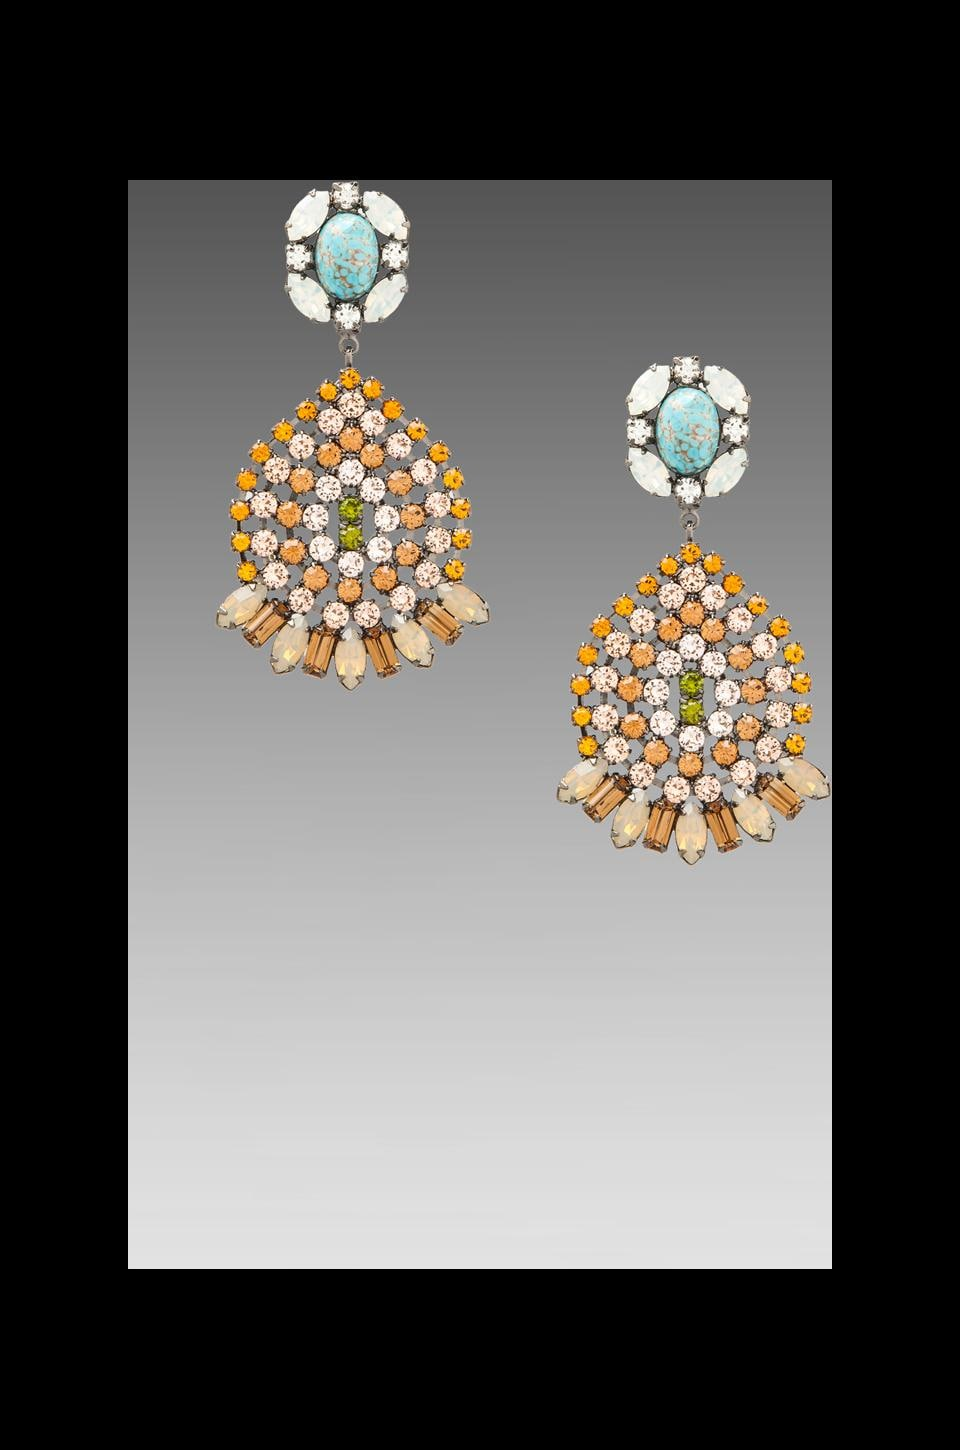 DANNIJO Siobhan Earrings in Topaz